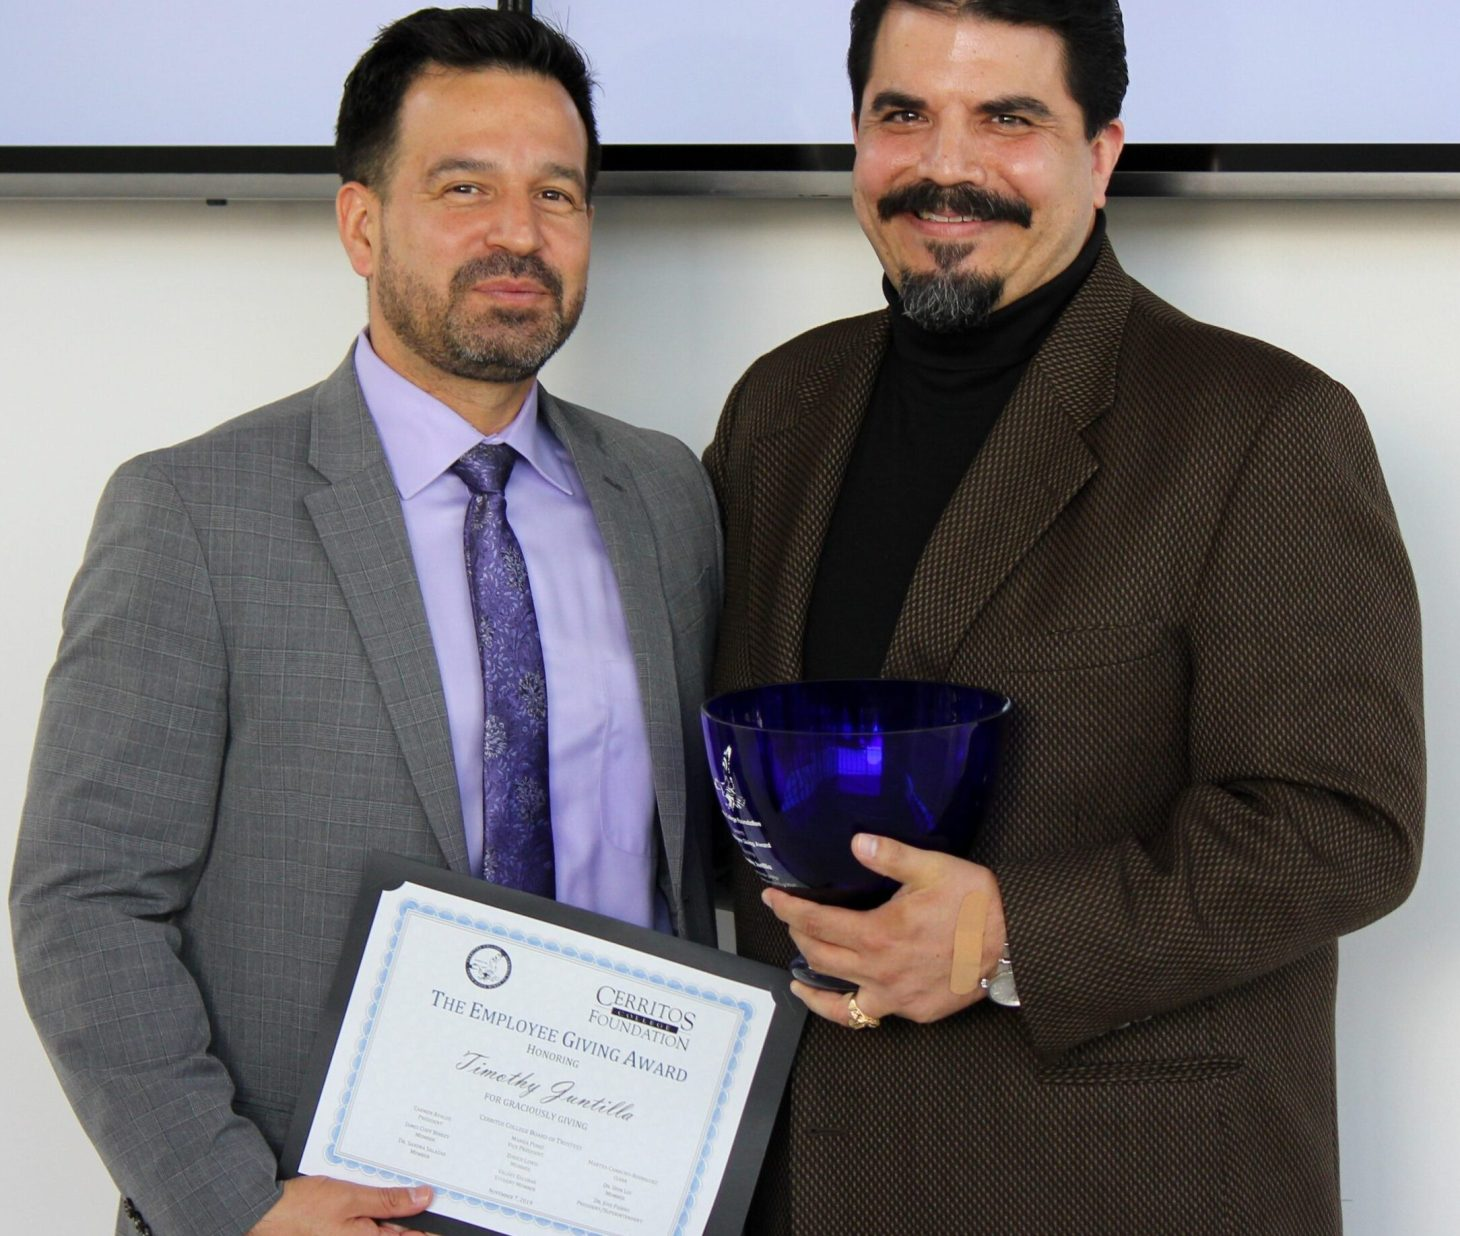 Dr. Jose Fierro and Timothy Juntilla